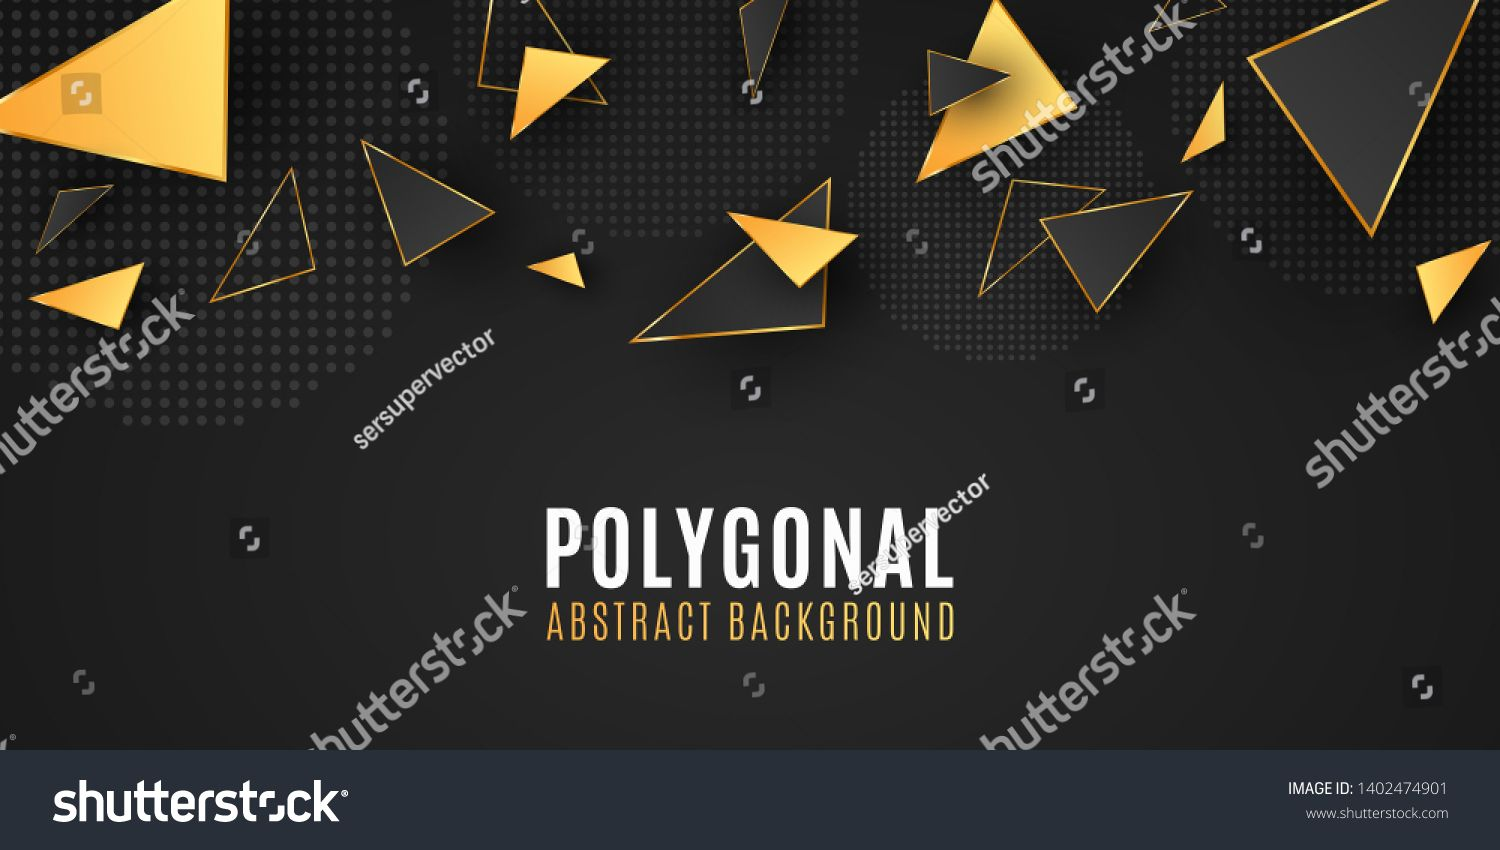 Abstract Geometric Shapes Stylish Background For Your